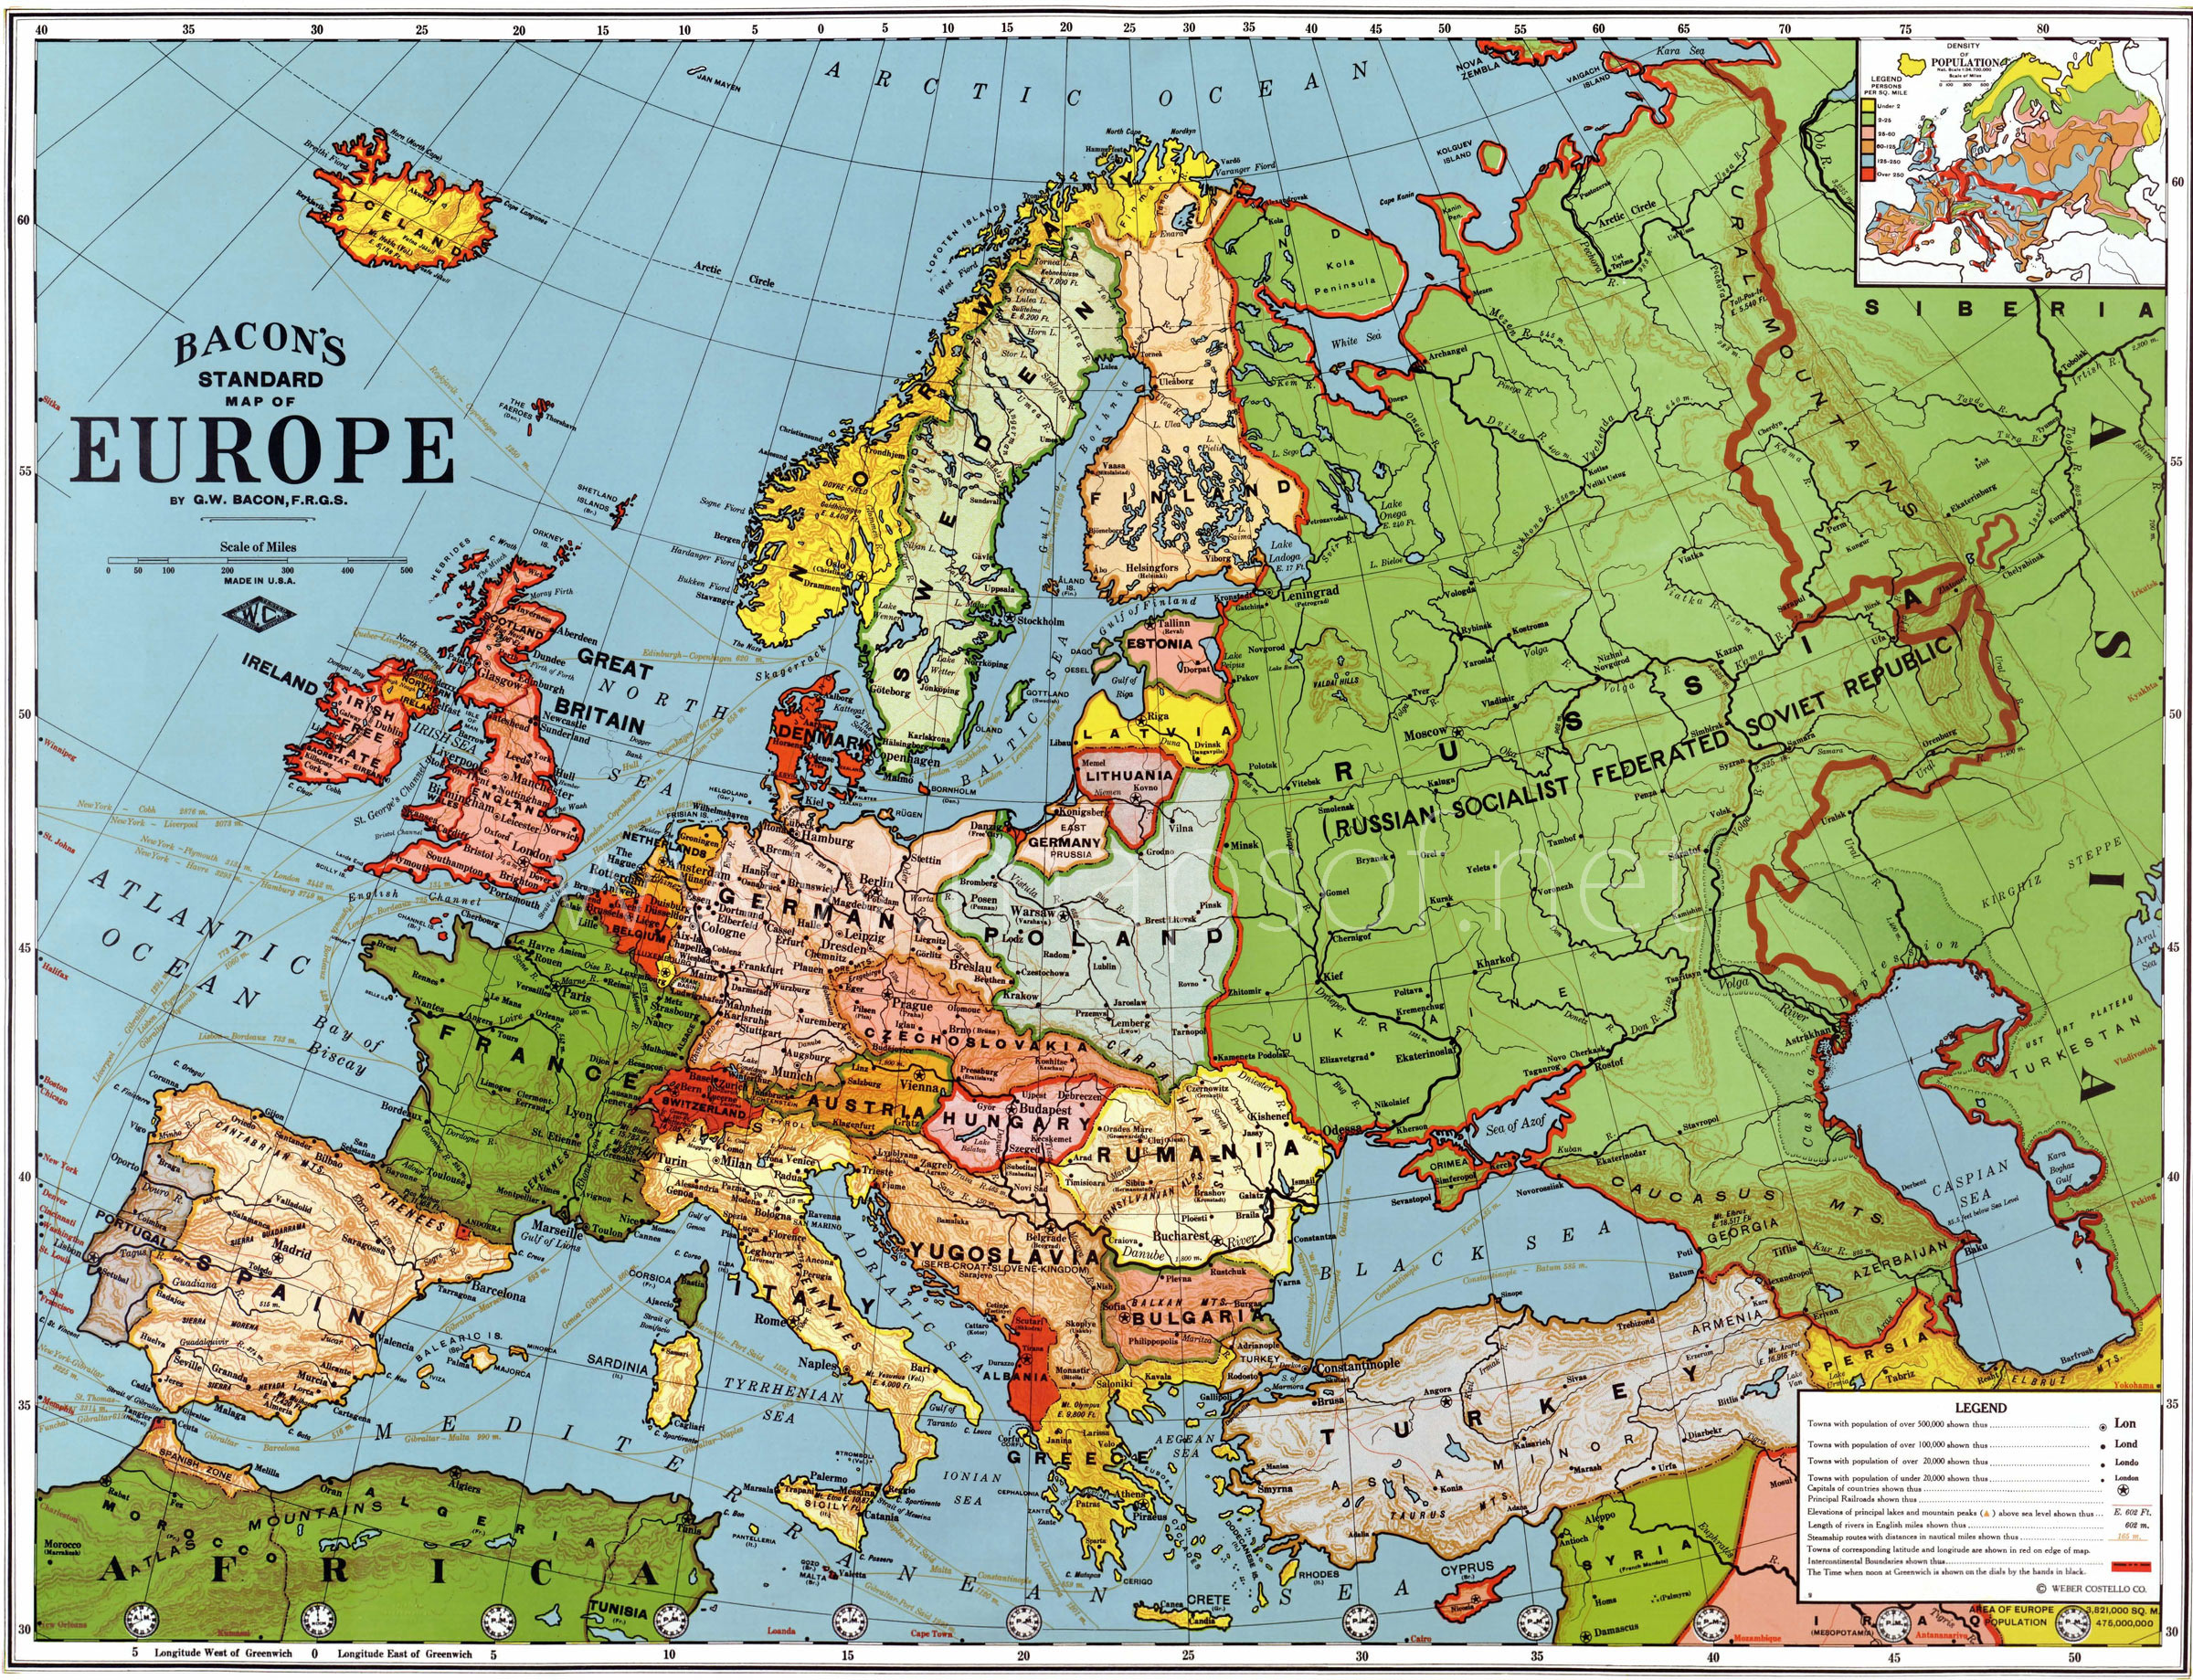 Europe Old Map (1923)